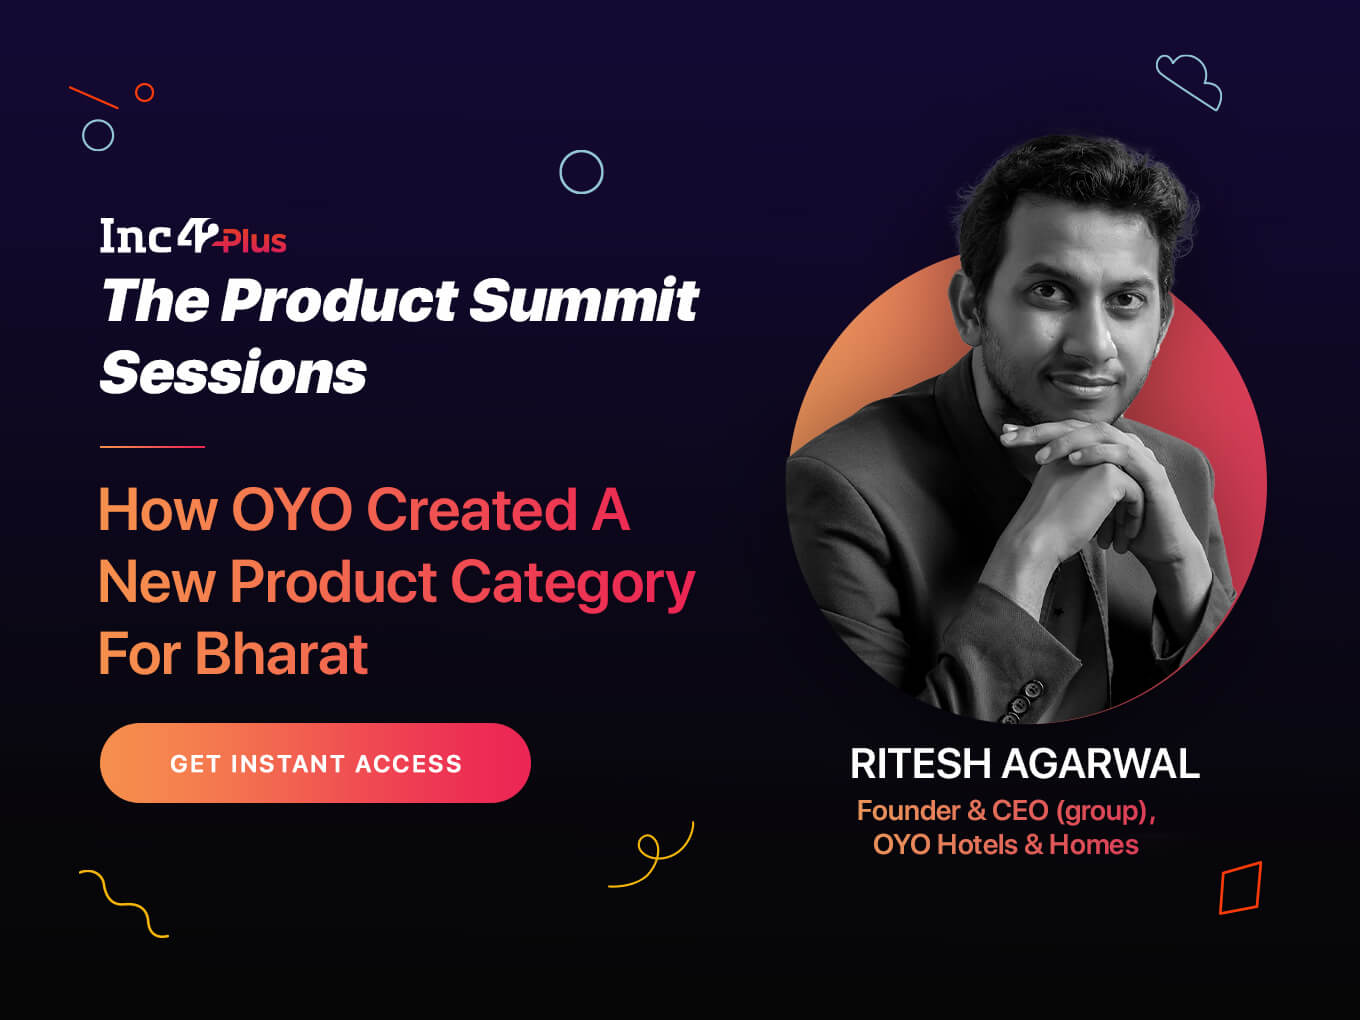 HOW OYO CREATED A NEW PRODUCT CATEGORY FOR BHARAT